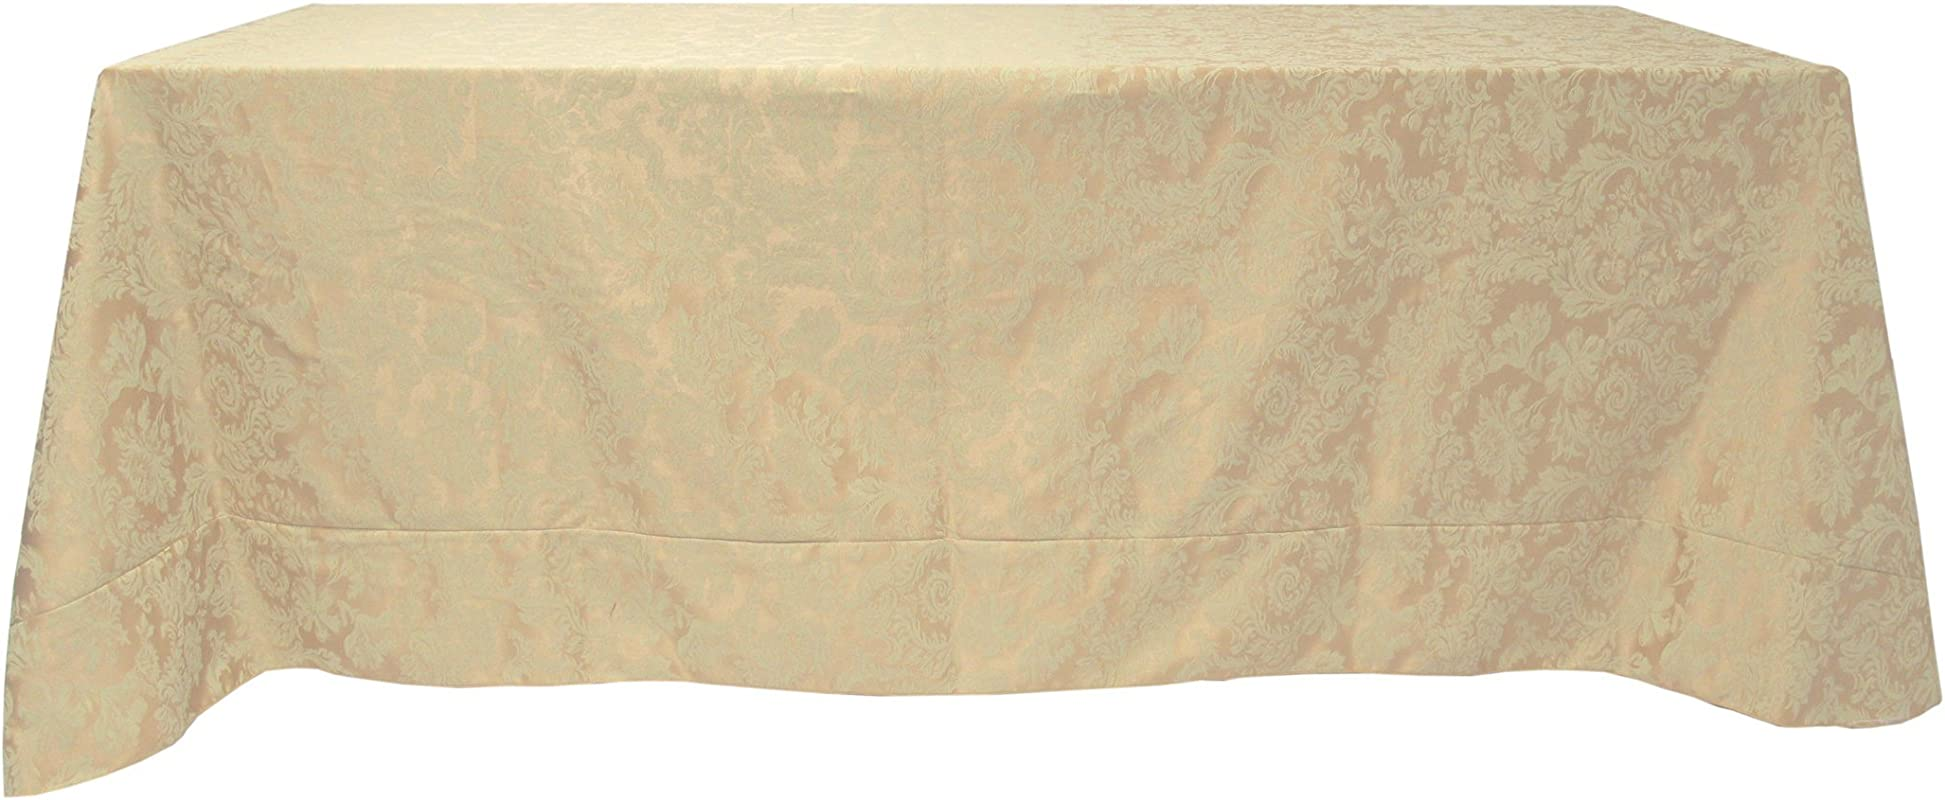 Ultimate Textile Miranda 90 X 132 Inch Rectangular Damask Tablecloth Champagne Ivory Cream